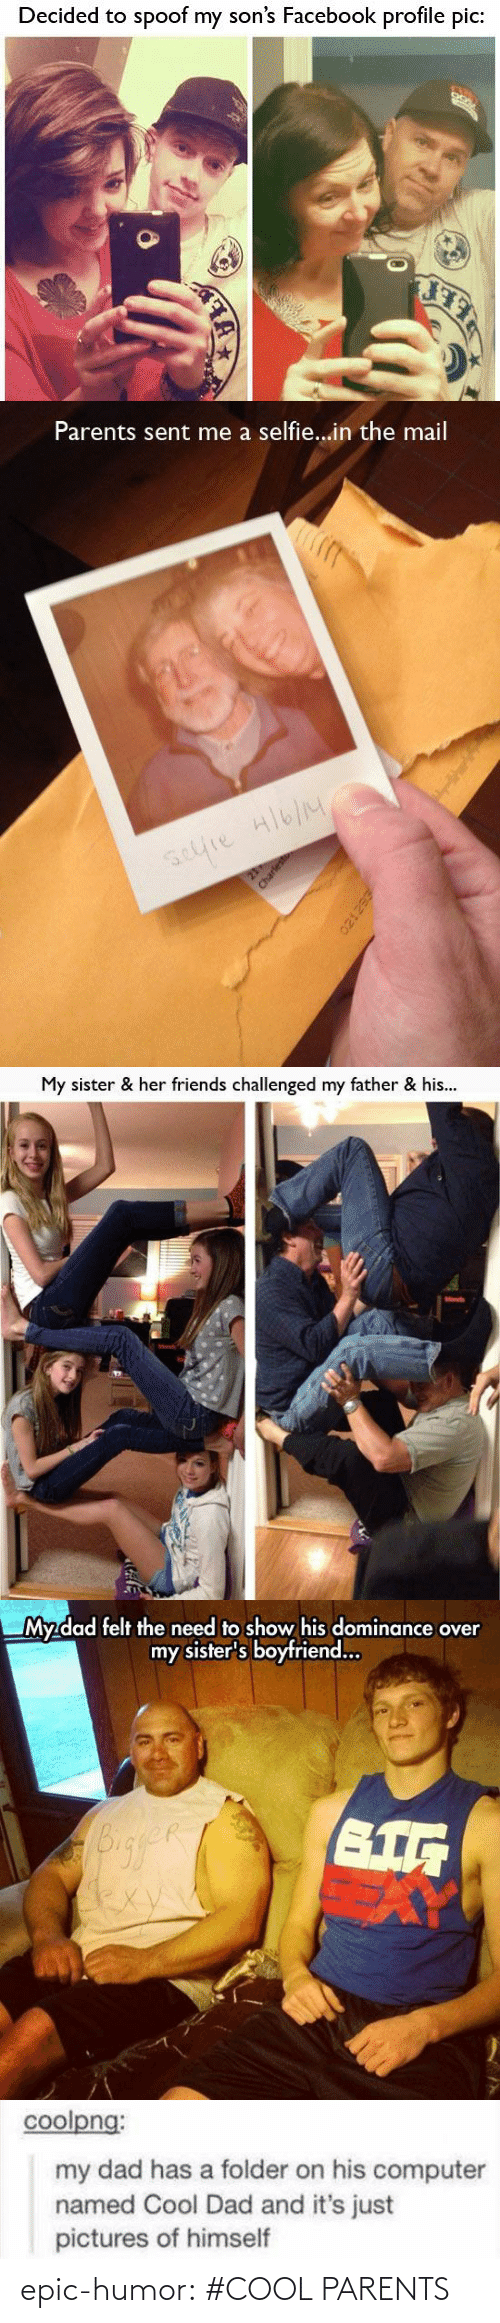 Boyfriend: Decided to spoof my son's Facebook profile pic:   Parents sent me a selfie...in the mail  selie Hlb/M  21  Charlest   My sister & her friends challenged my father & his...  Honds   My dad felt the need to show his dominance over  my sister's boyfriend..  exy   coolpng:  my dad has a folder on his computer  named Cool Dad and it's just  pictures of himself epic-humor:  #COOL PARENTS